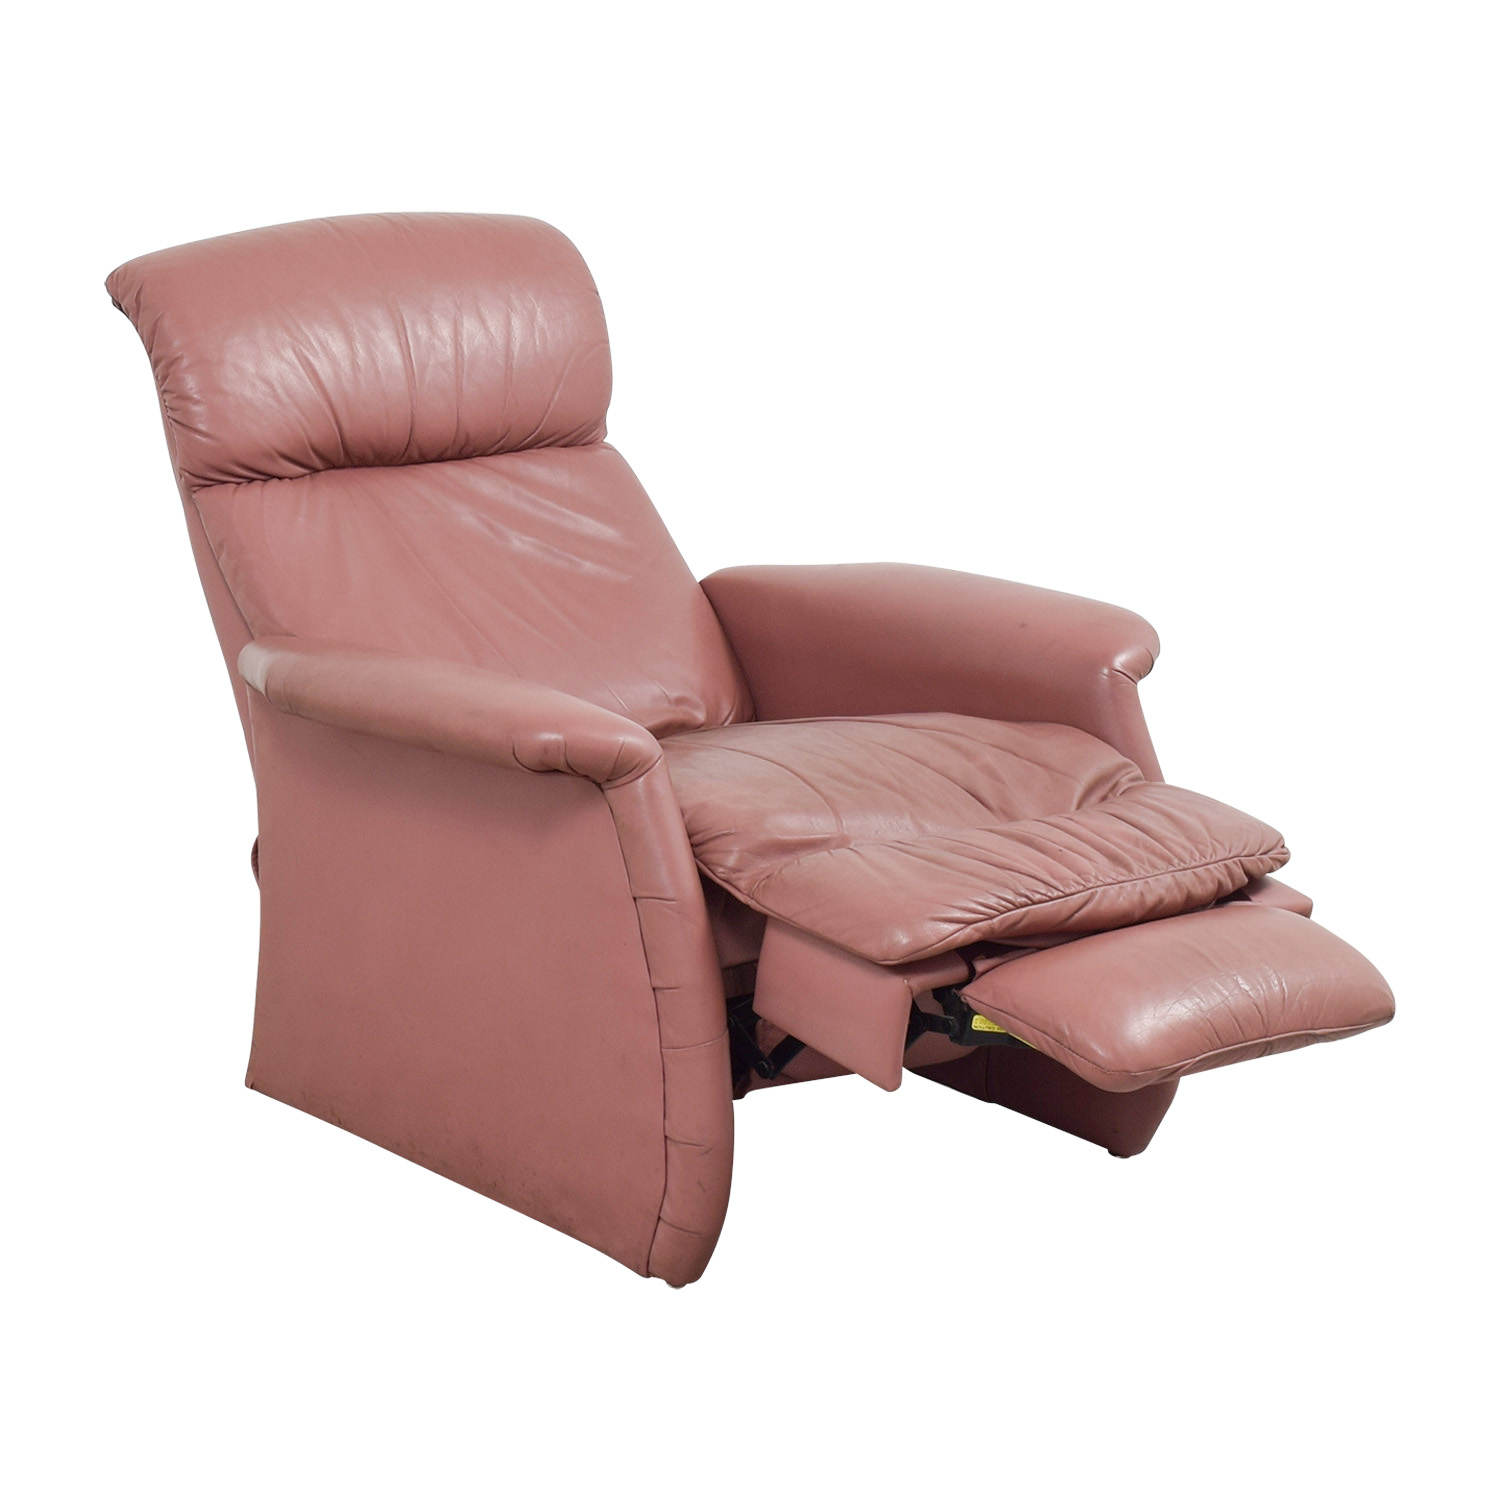 Salmon Leather Recliner on sale